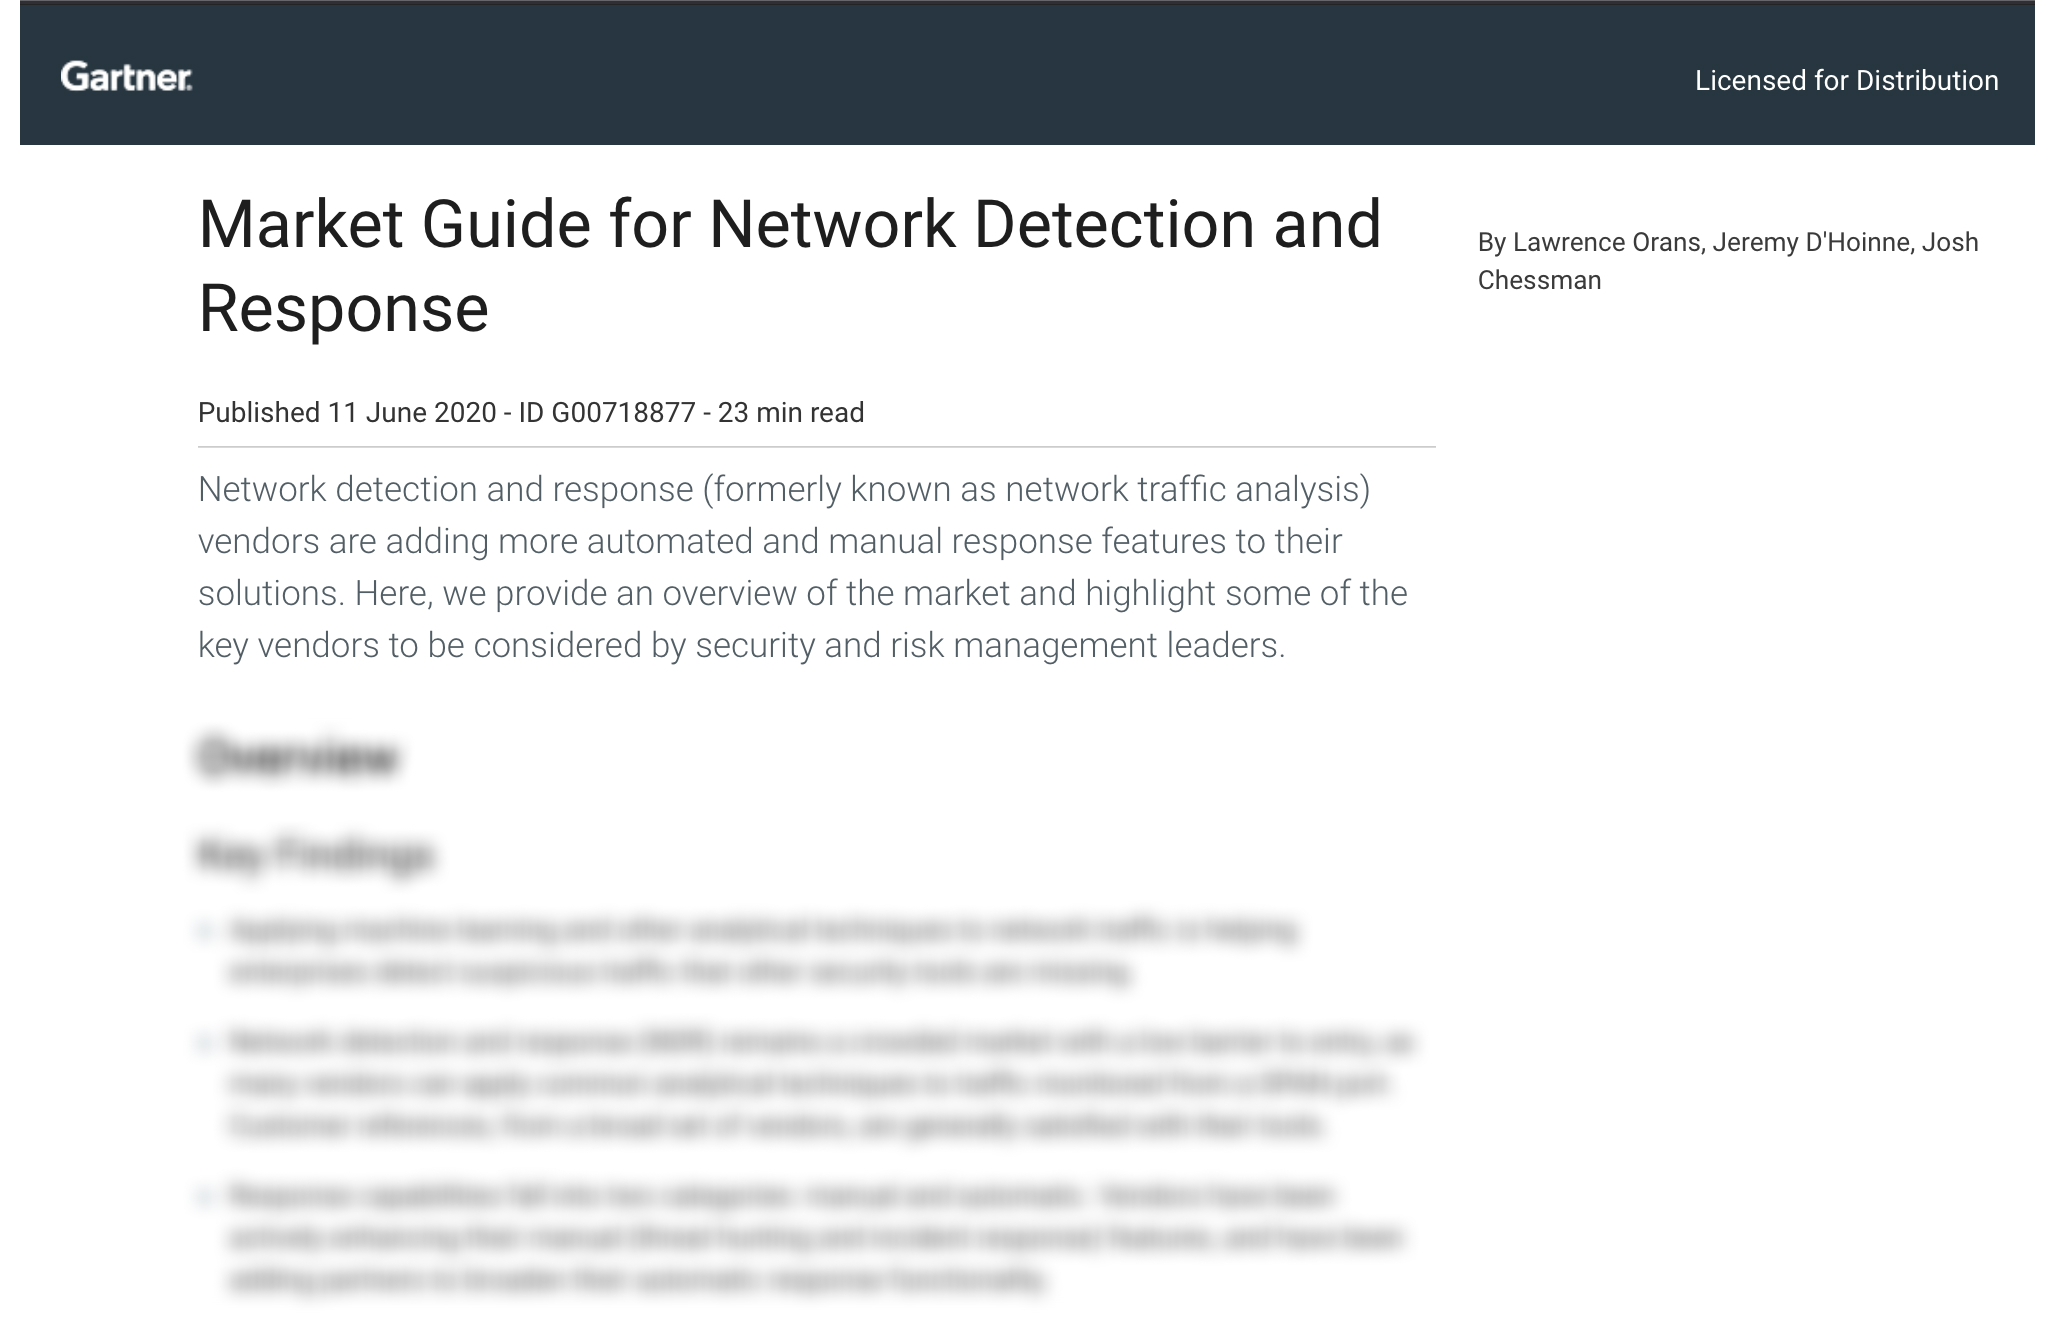 Gartner Market Guide for Network Detection and Response (NDR) 2020